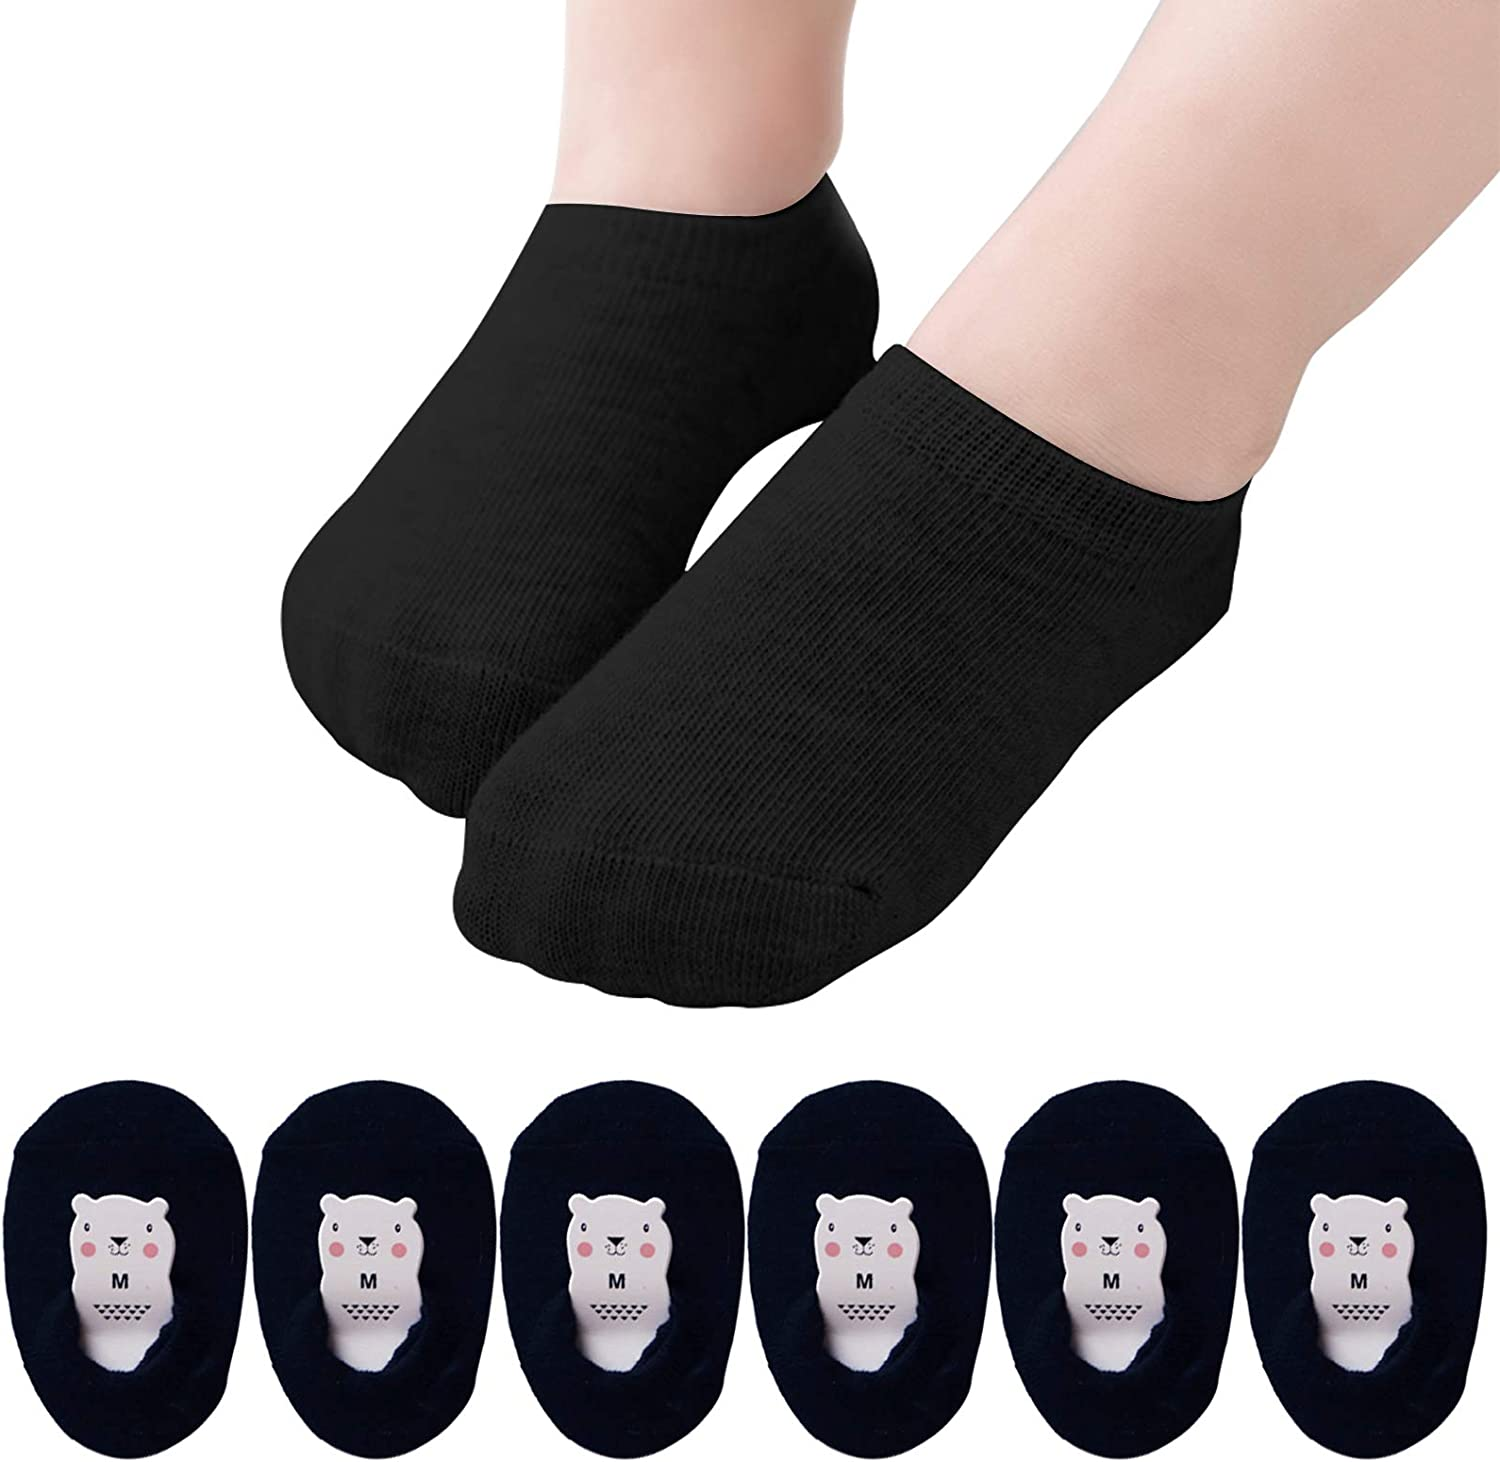 6 Pairs Baby Non Slip Cotton Socks Toddle Boys Girls Anti Skid No Show Low Cut Floor Socks for Infants Kids